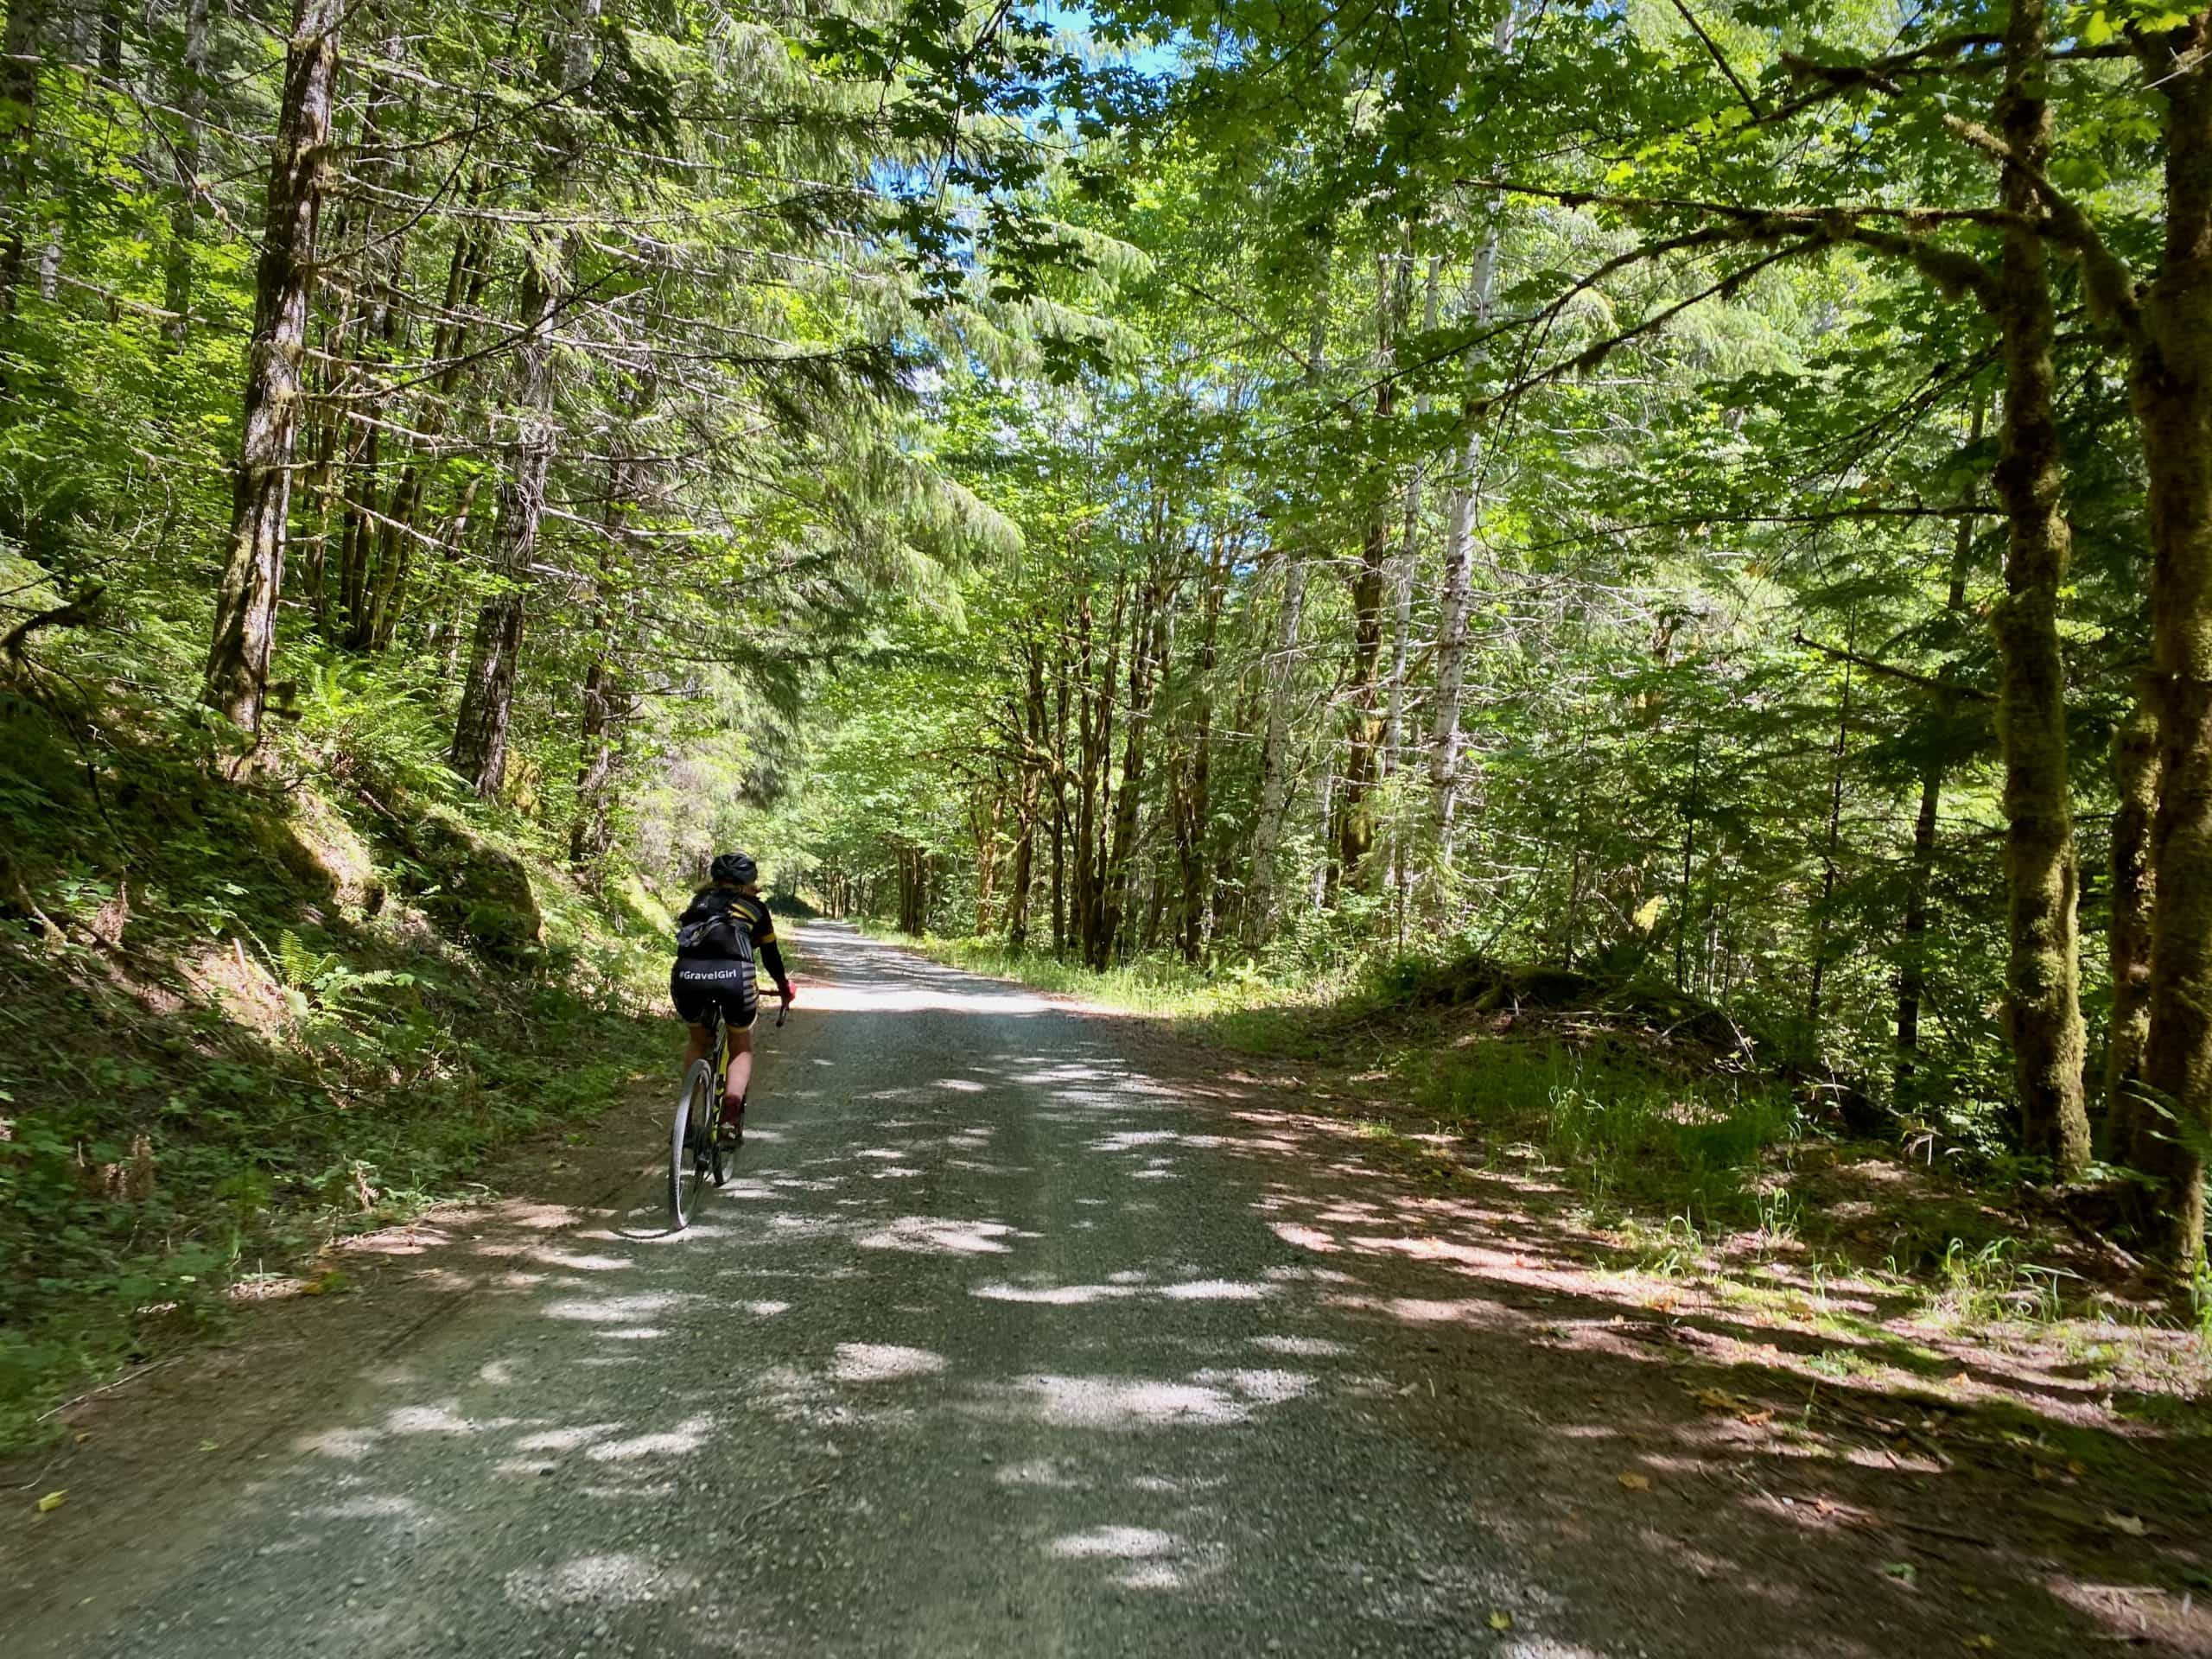 Gravel cyclist riding along Tidbits creek in the Willamette National Forest.